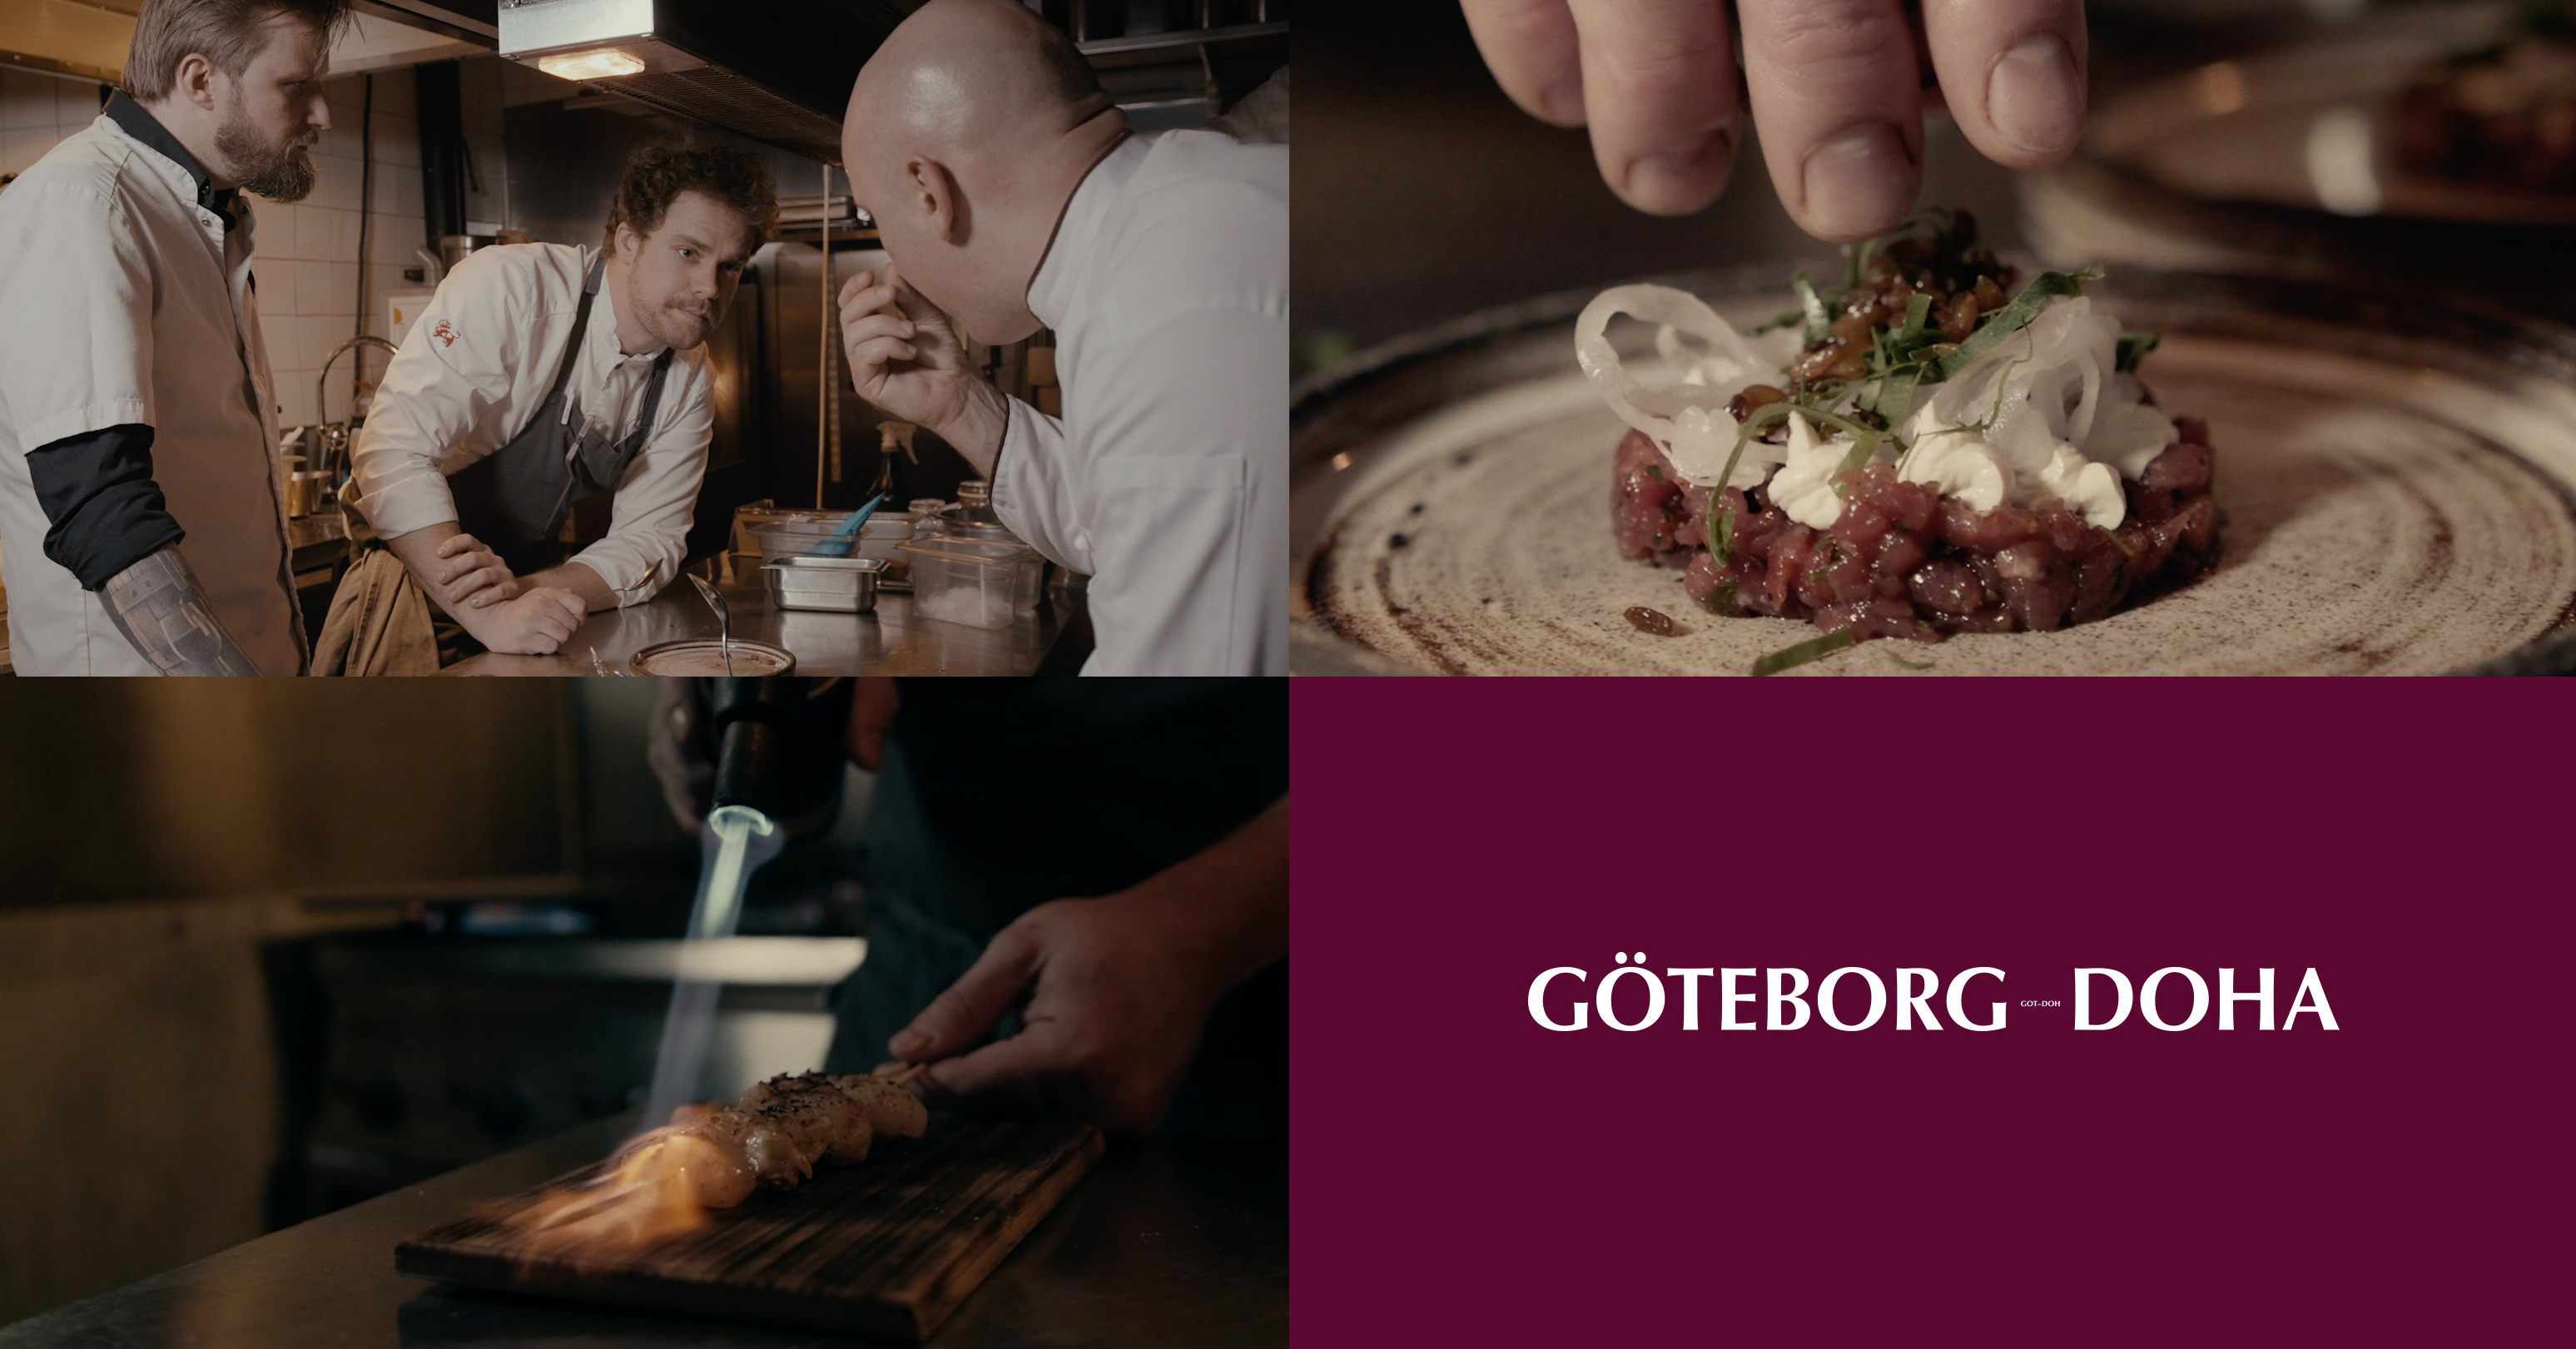 Qatar Airways får to dage i denne måned en slags pop up-restaurant i Gøteborg. Her kollage fra Somm Restaurant & Winebar i Gøteborg og Qatar Airways.